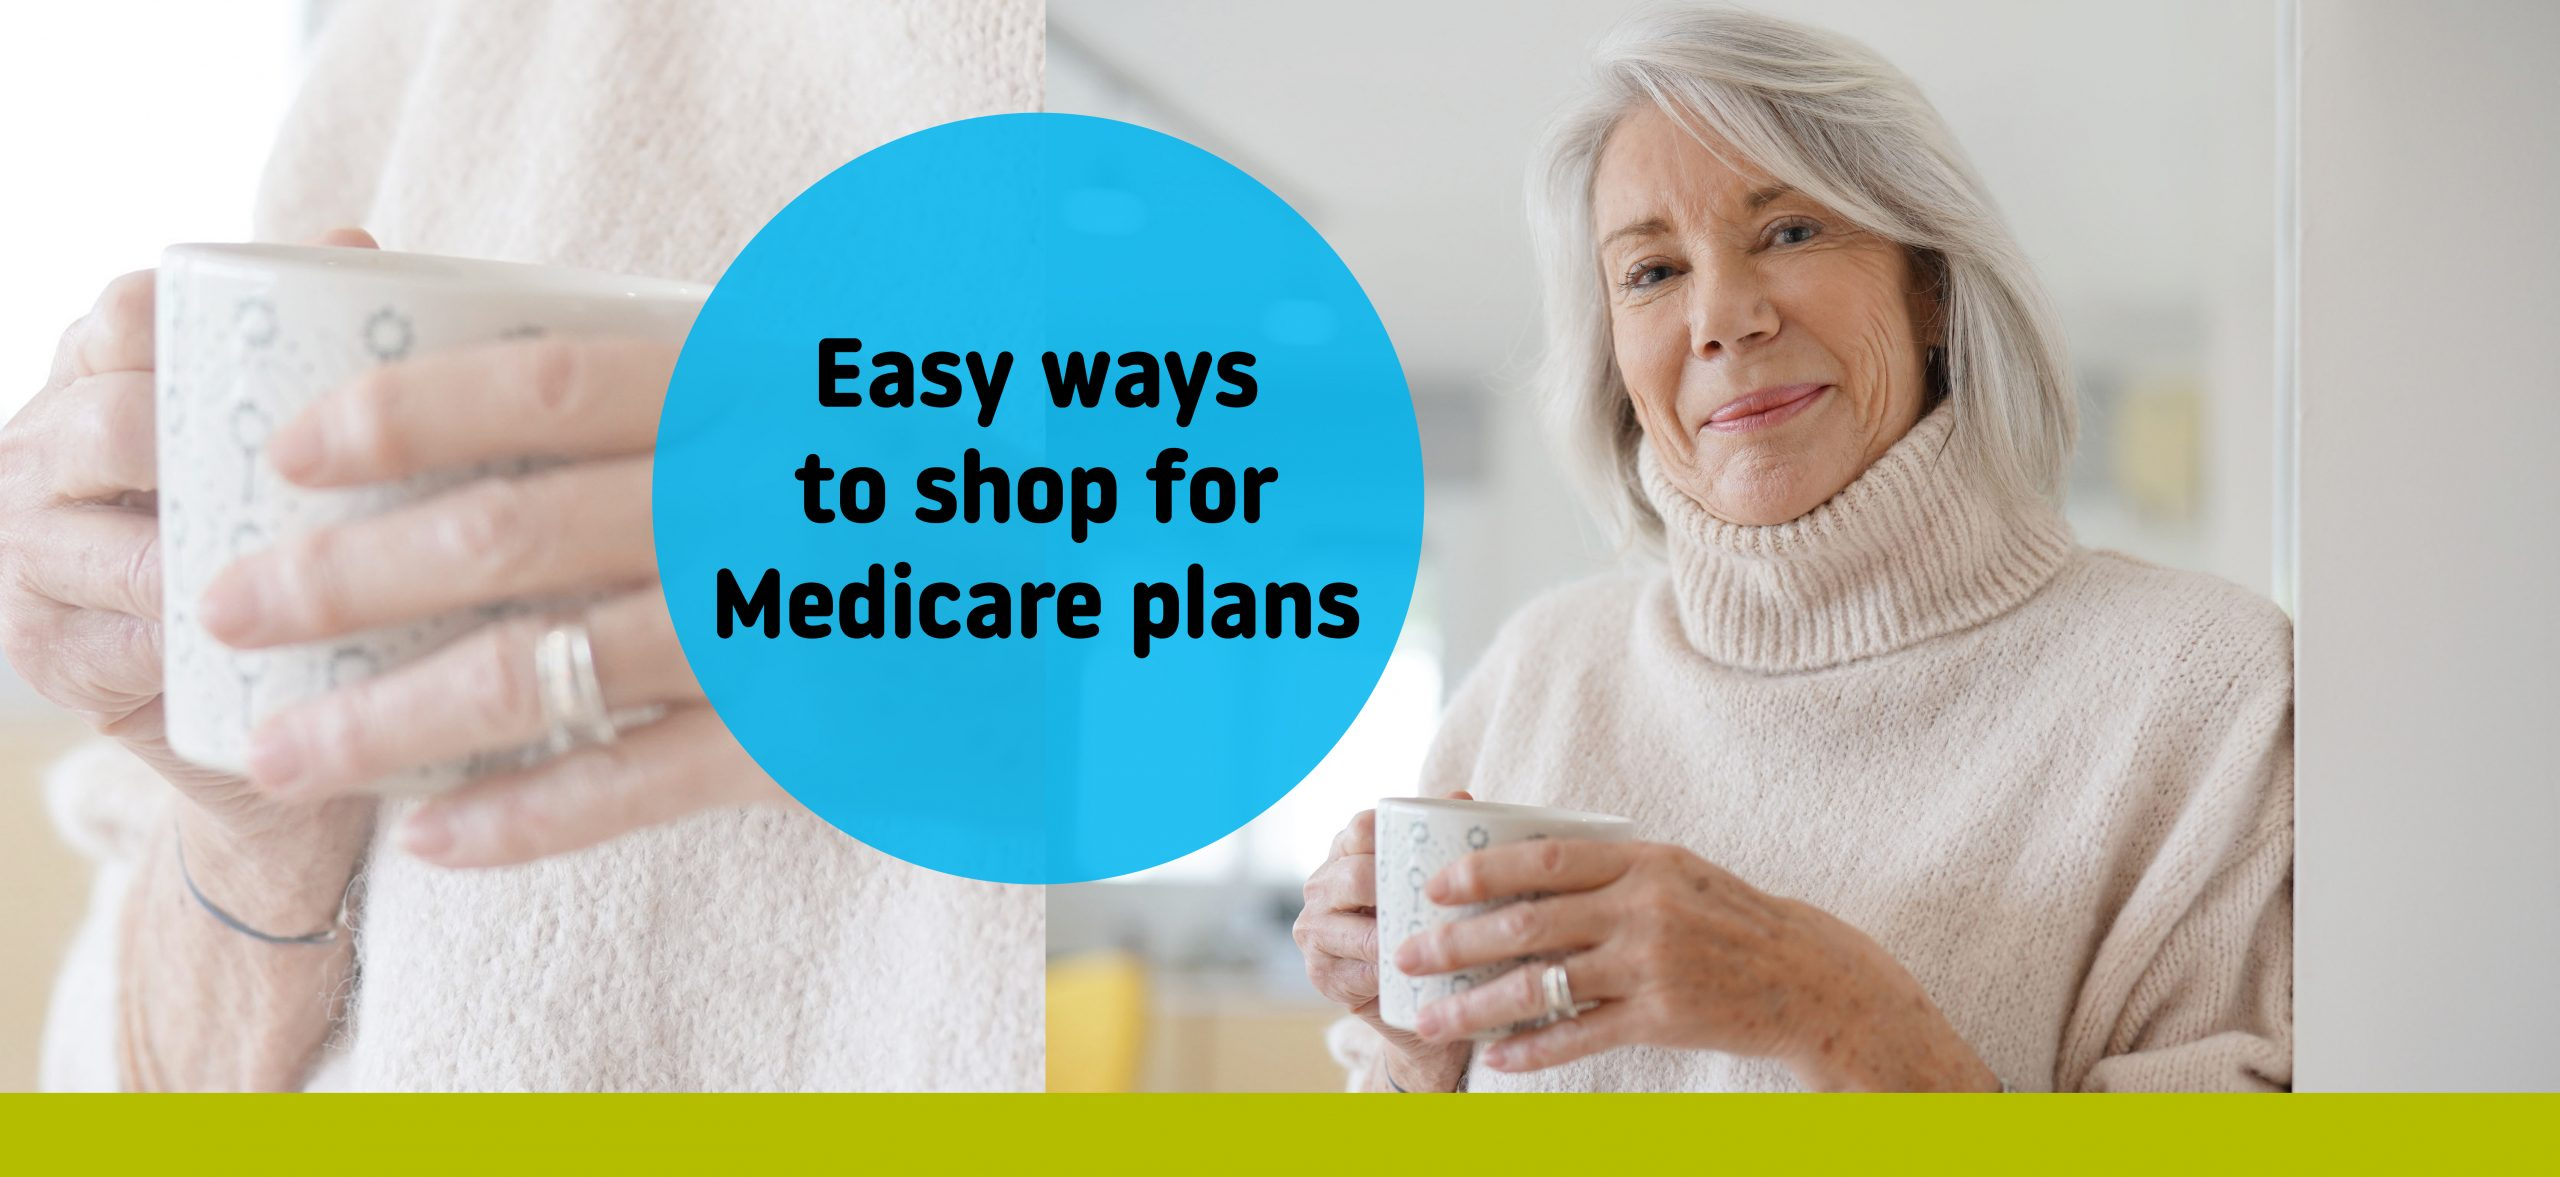 Easy Ways to shop for Medicare plans